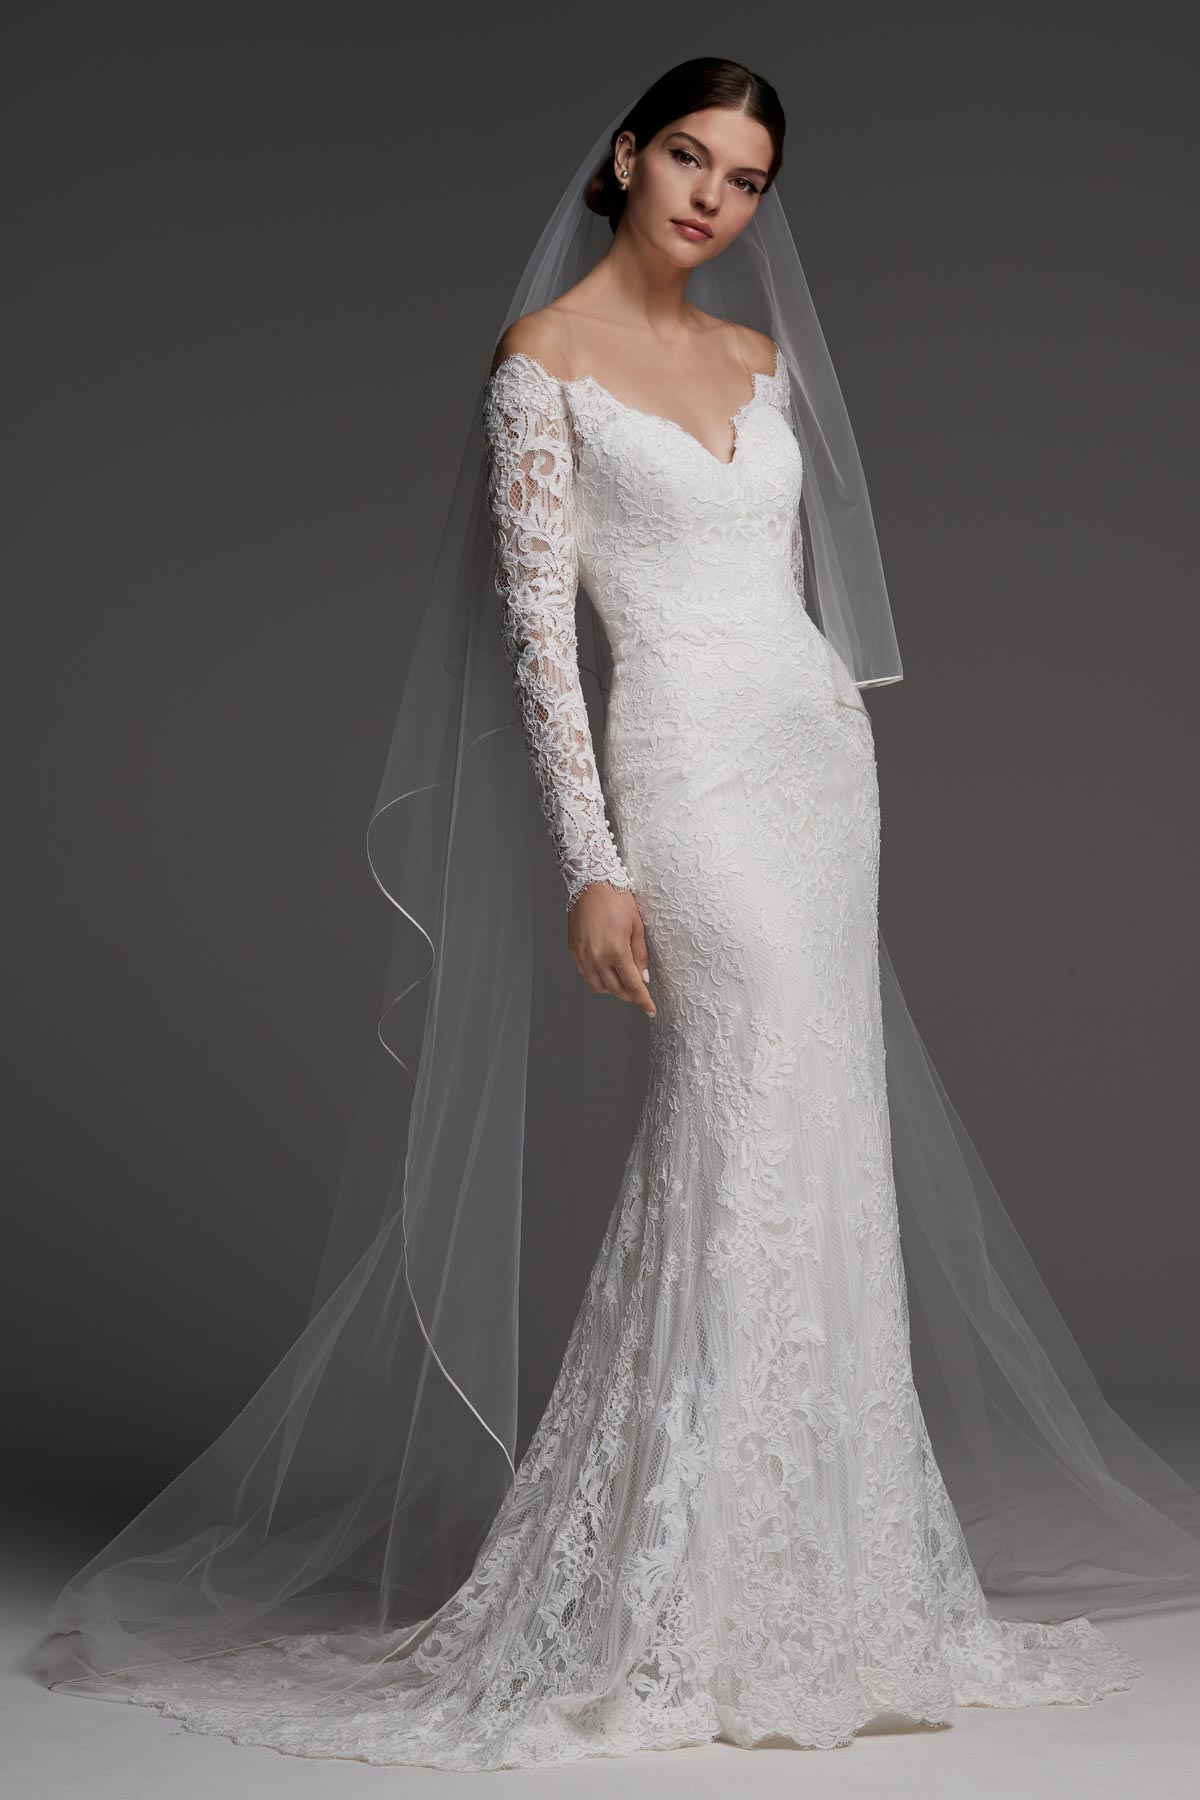 Lace Long-sleeved Off-Shoulder Bridal Dress | Bycouturier